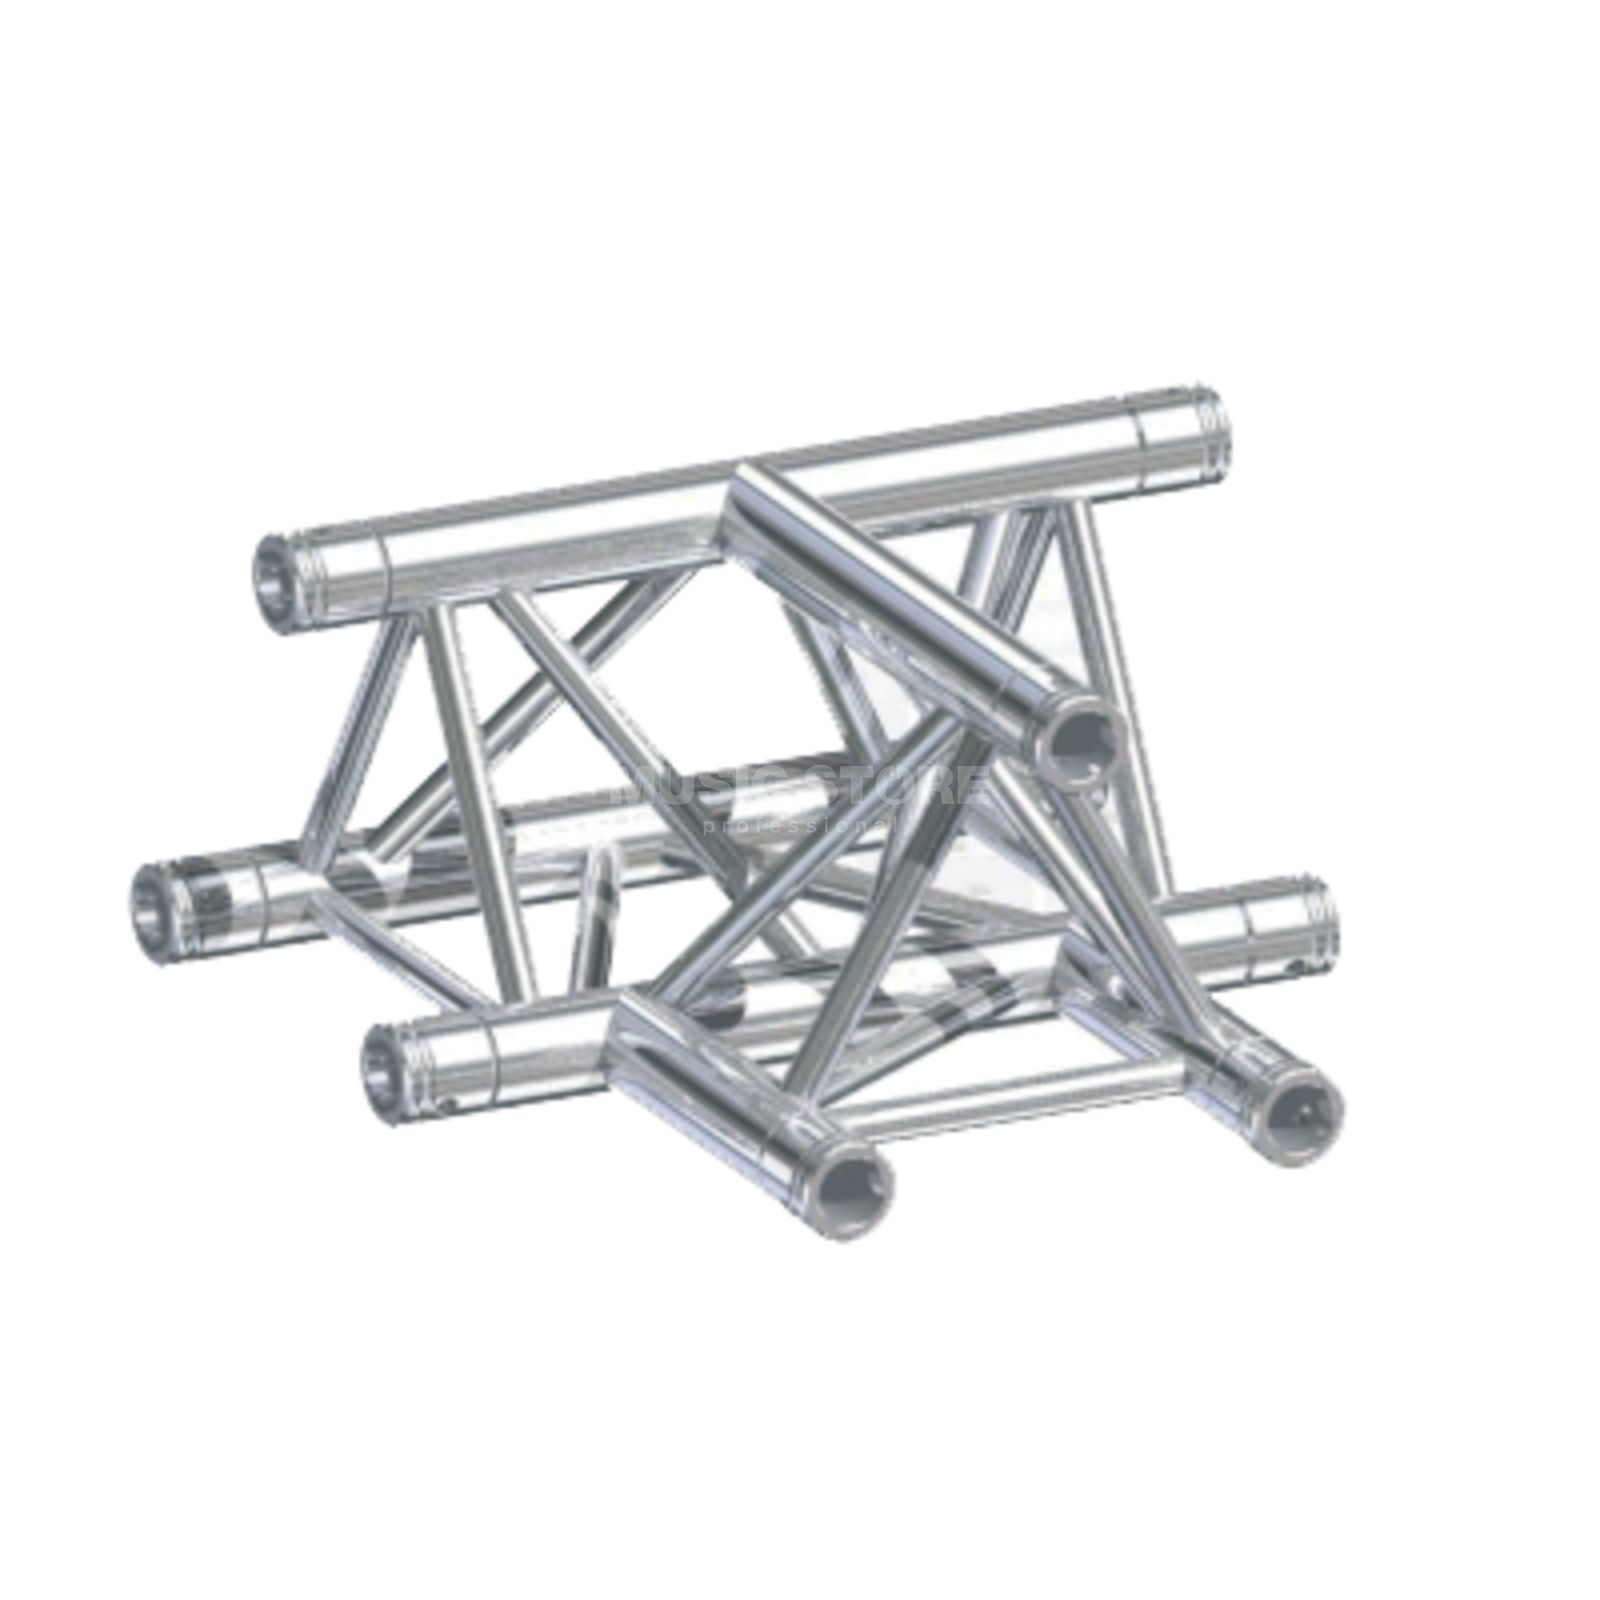 Global Truss F33 T-Piece T36 3-Point 3-Way  Product Image